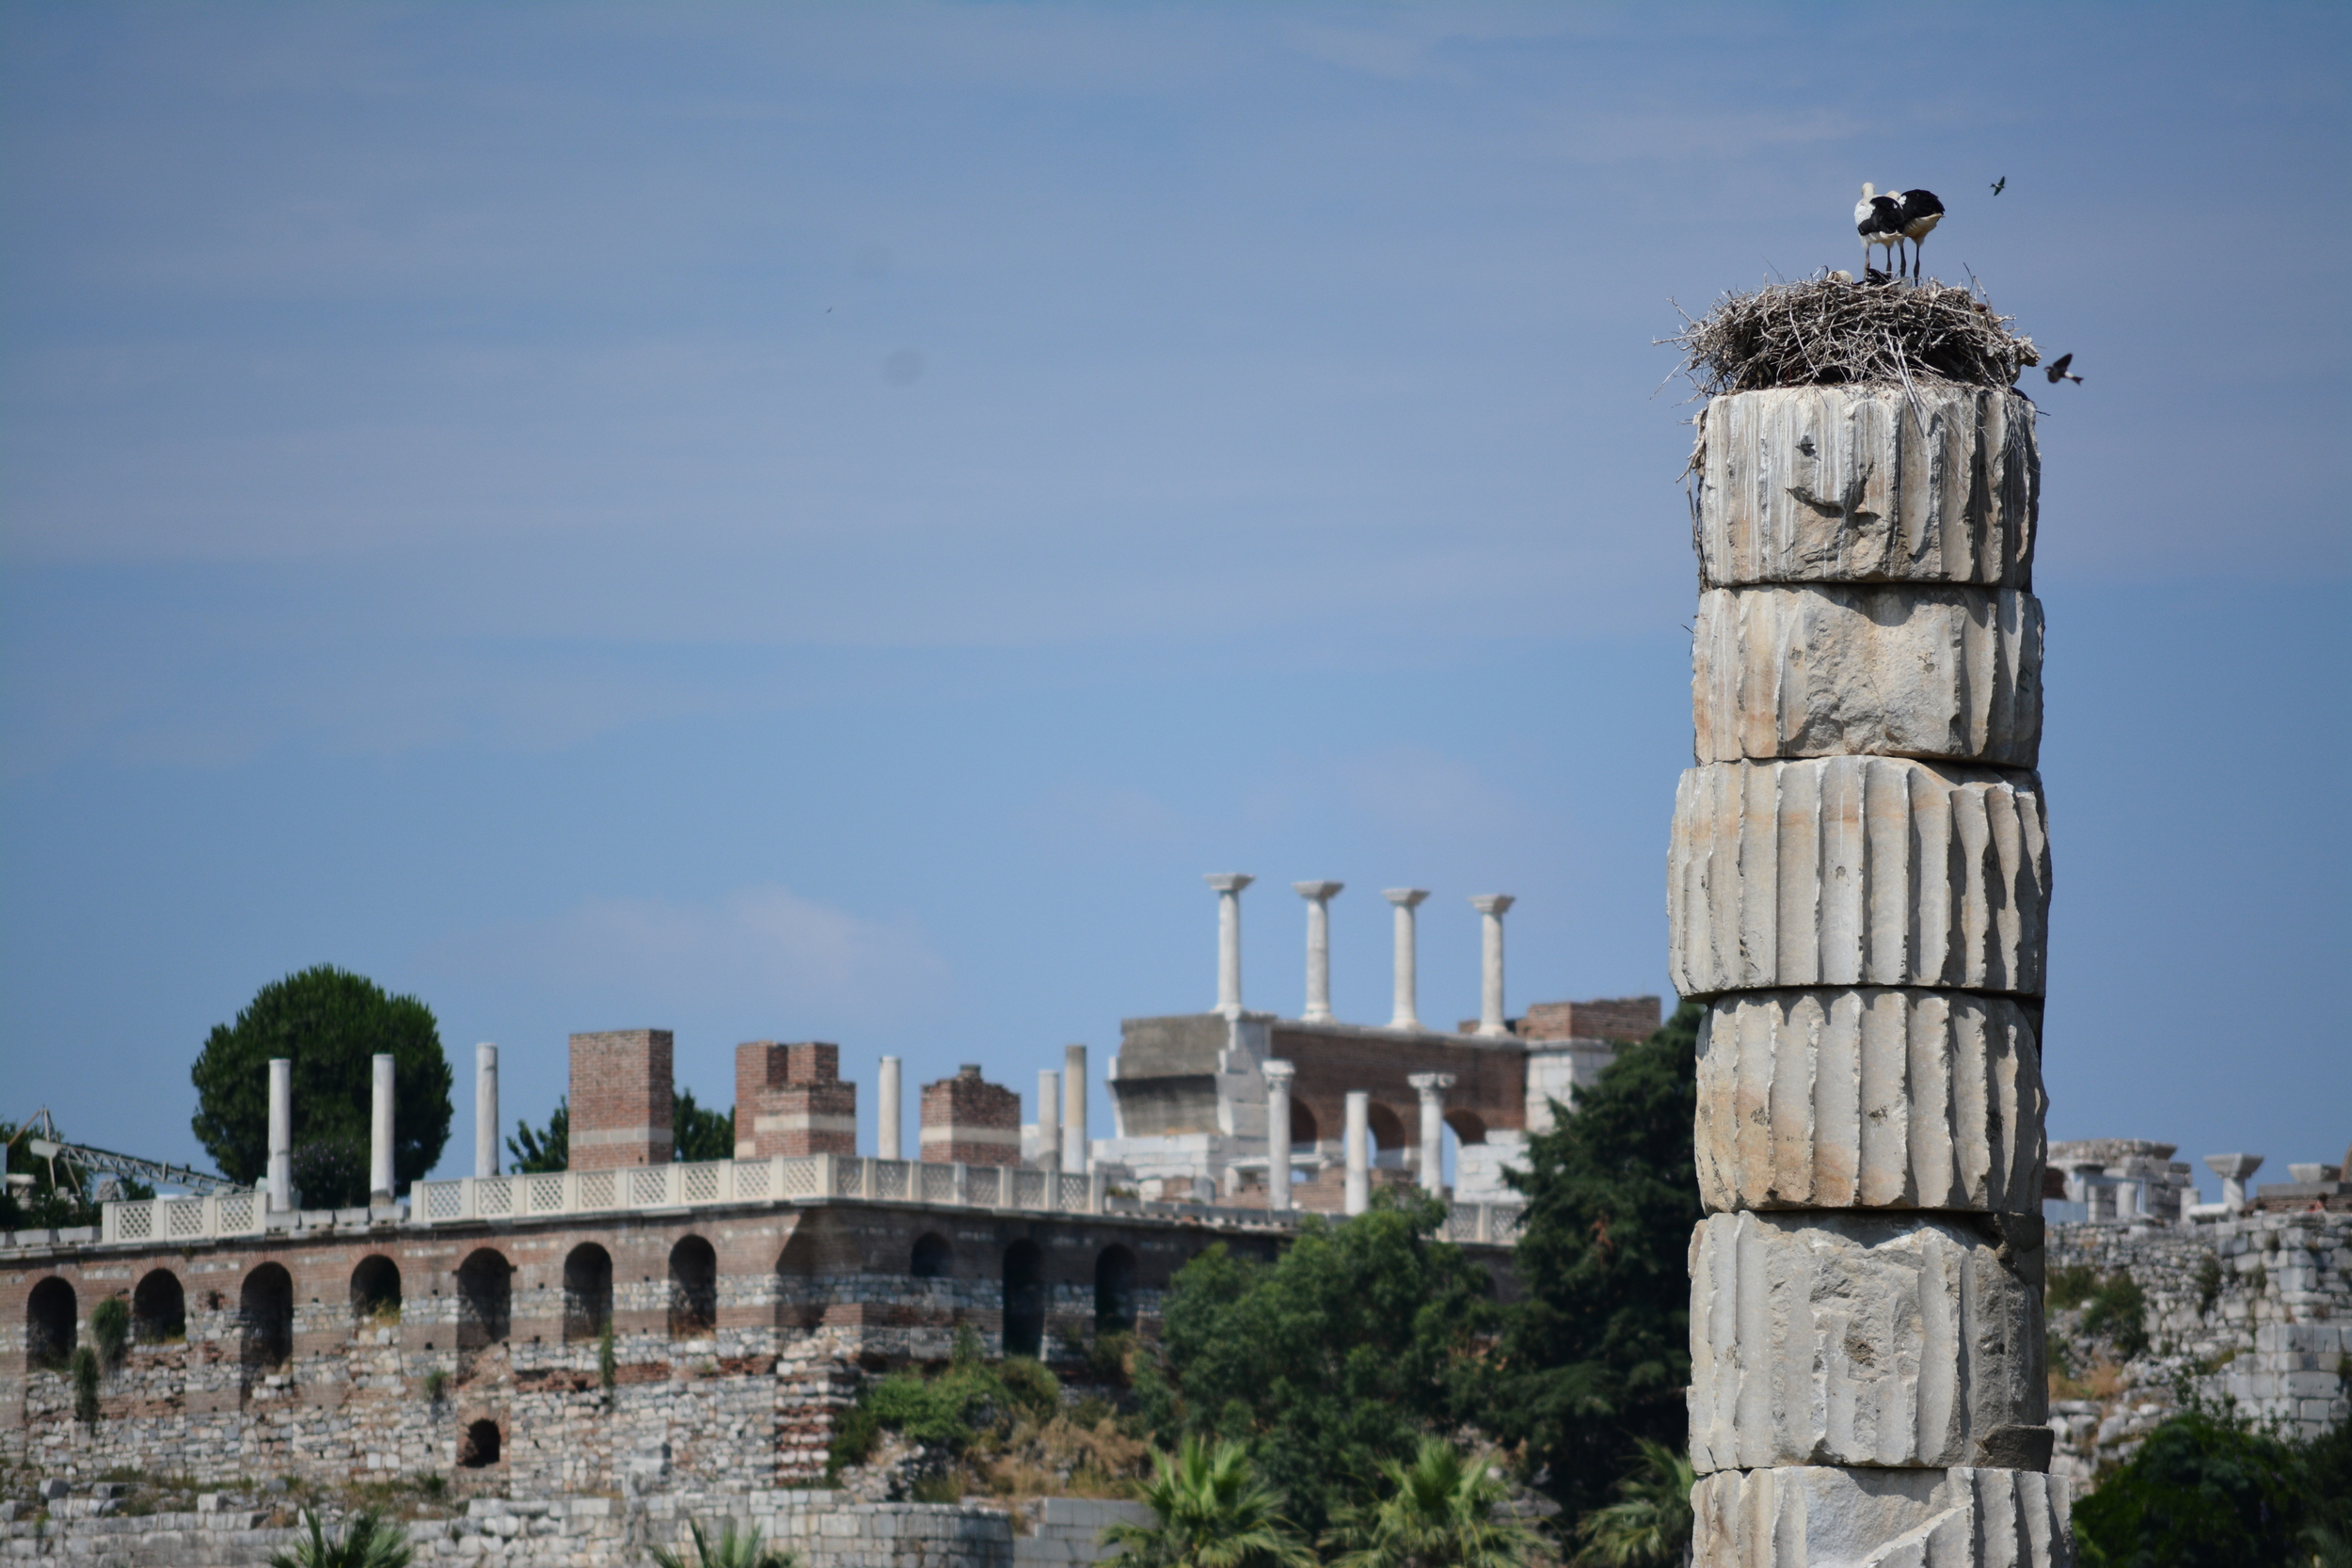 Photo: Ali Mert Özgün / Photography Tour Guide - St. John Basilica view from Artemis Temple